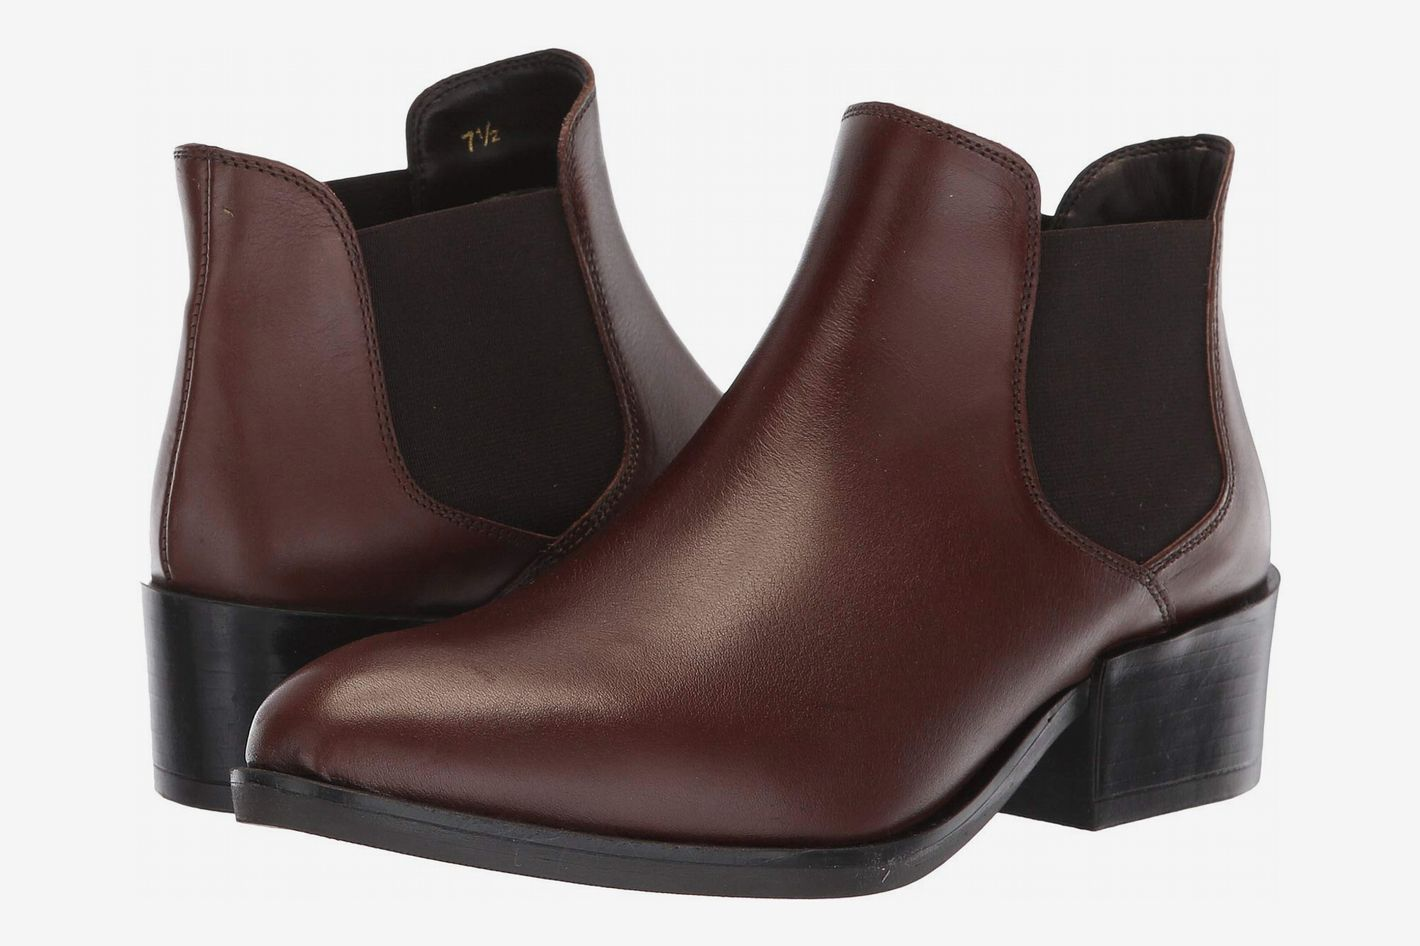 0b59a1736ce07f 31 Best Chelsea Boots 2018